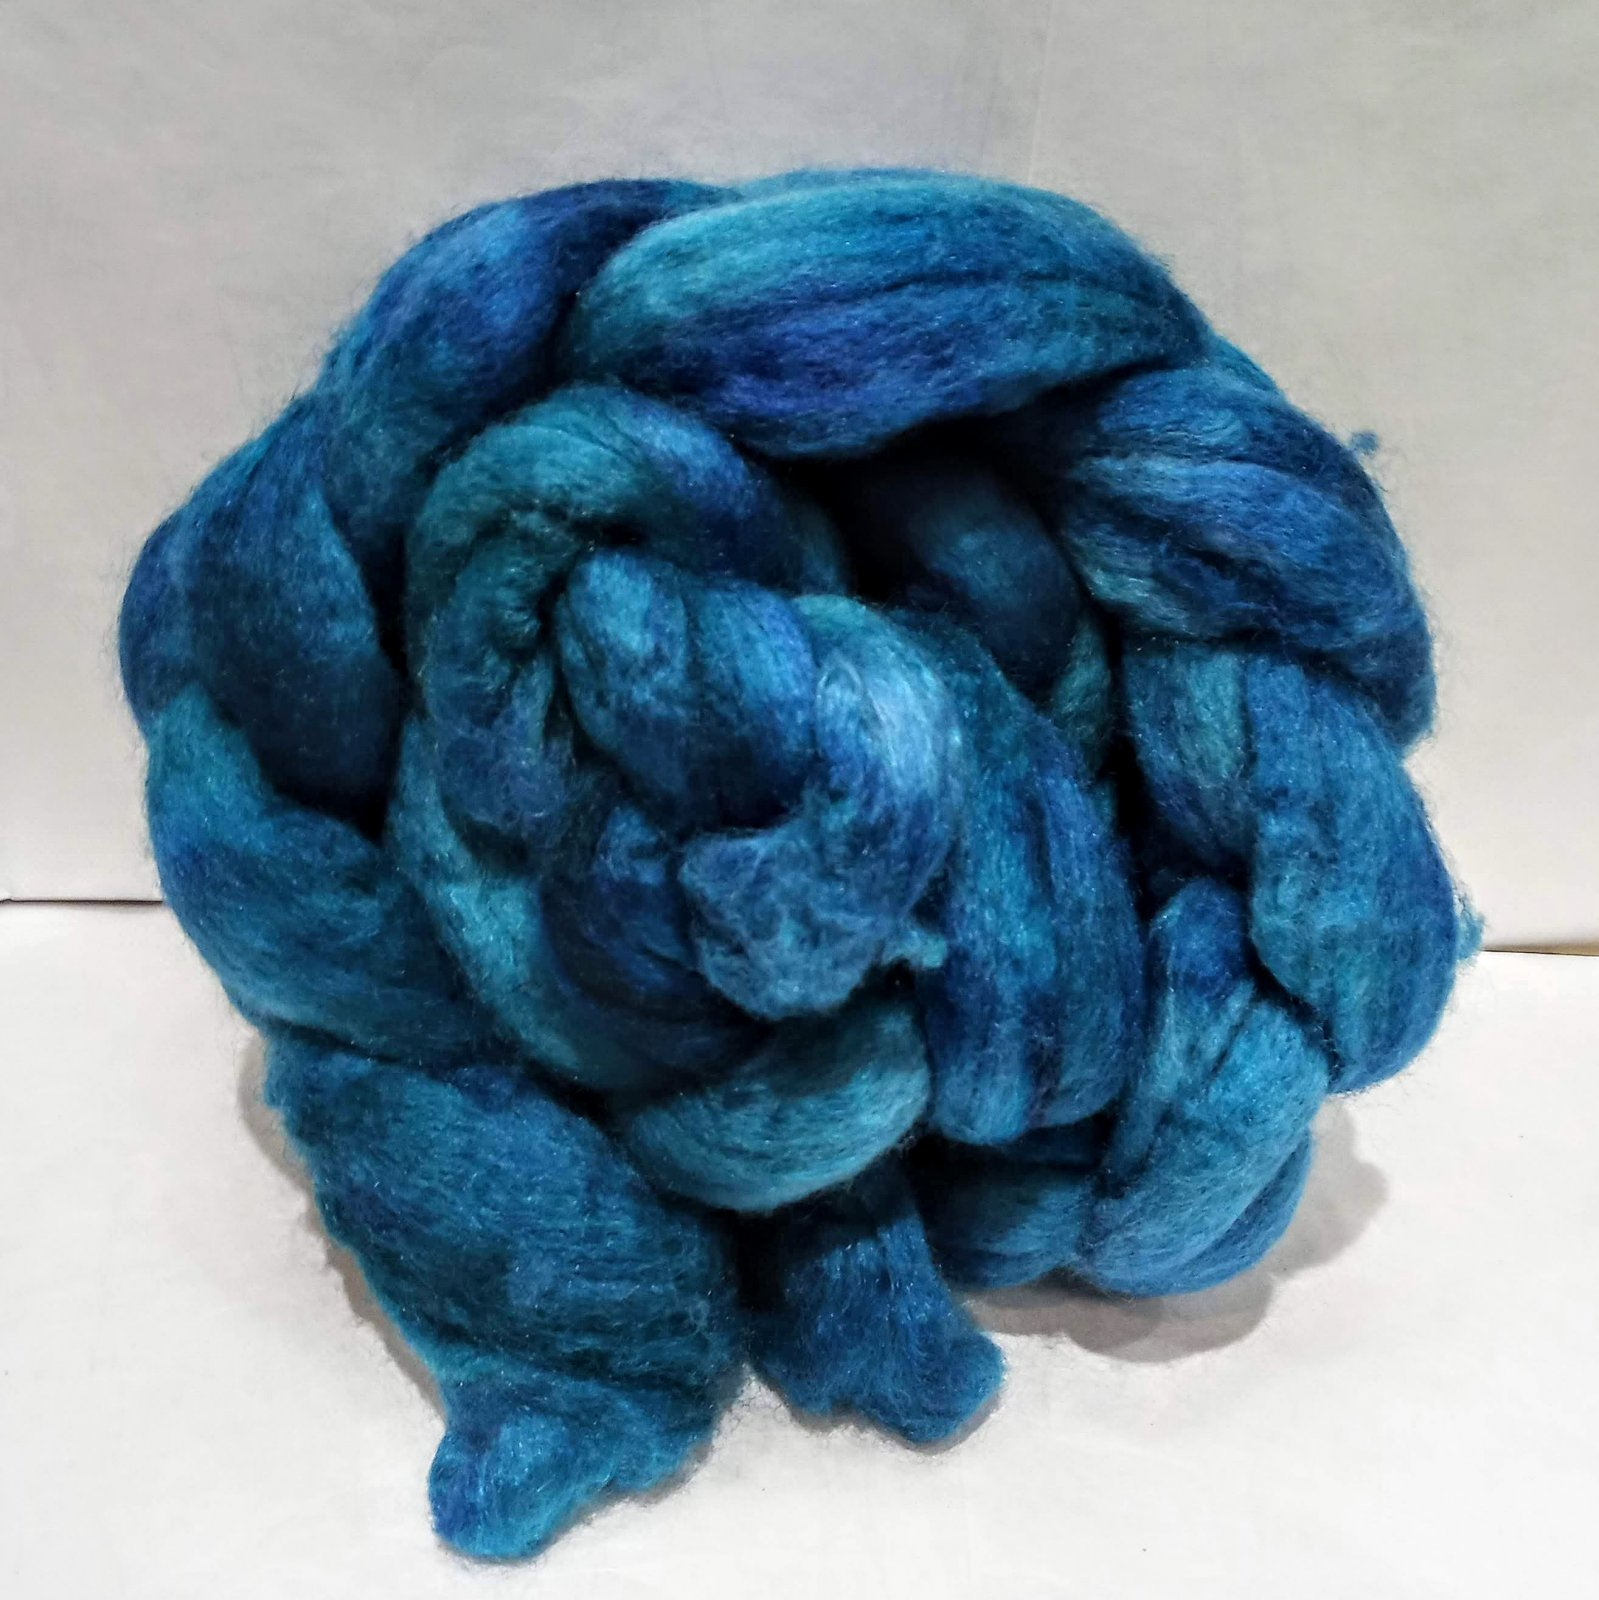 Blue Moon Fiber Arts Blueface Leicester and Tussah Roving